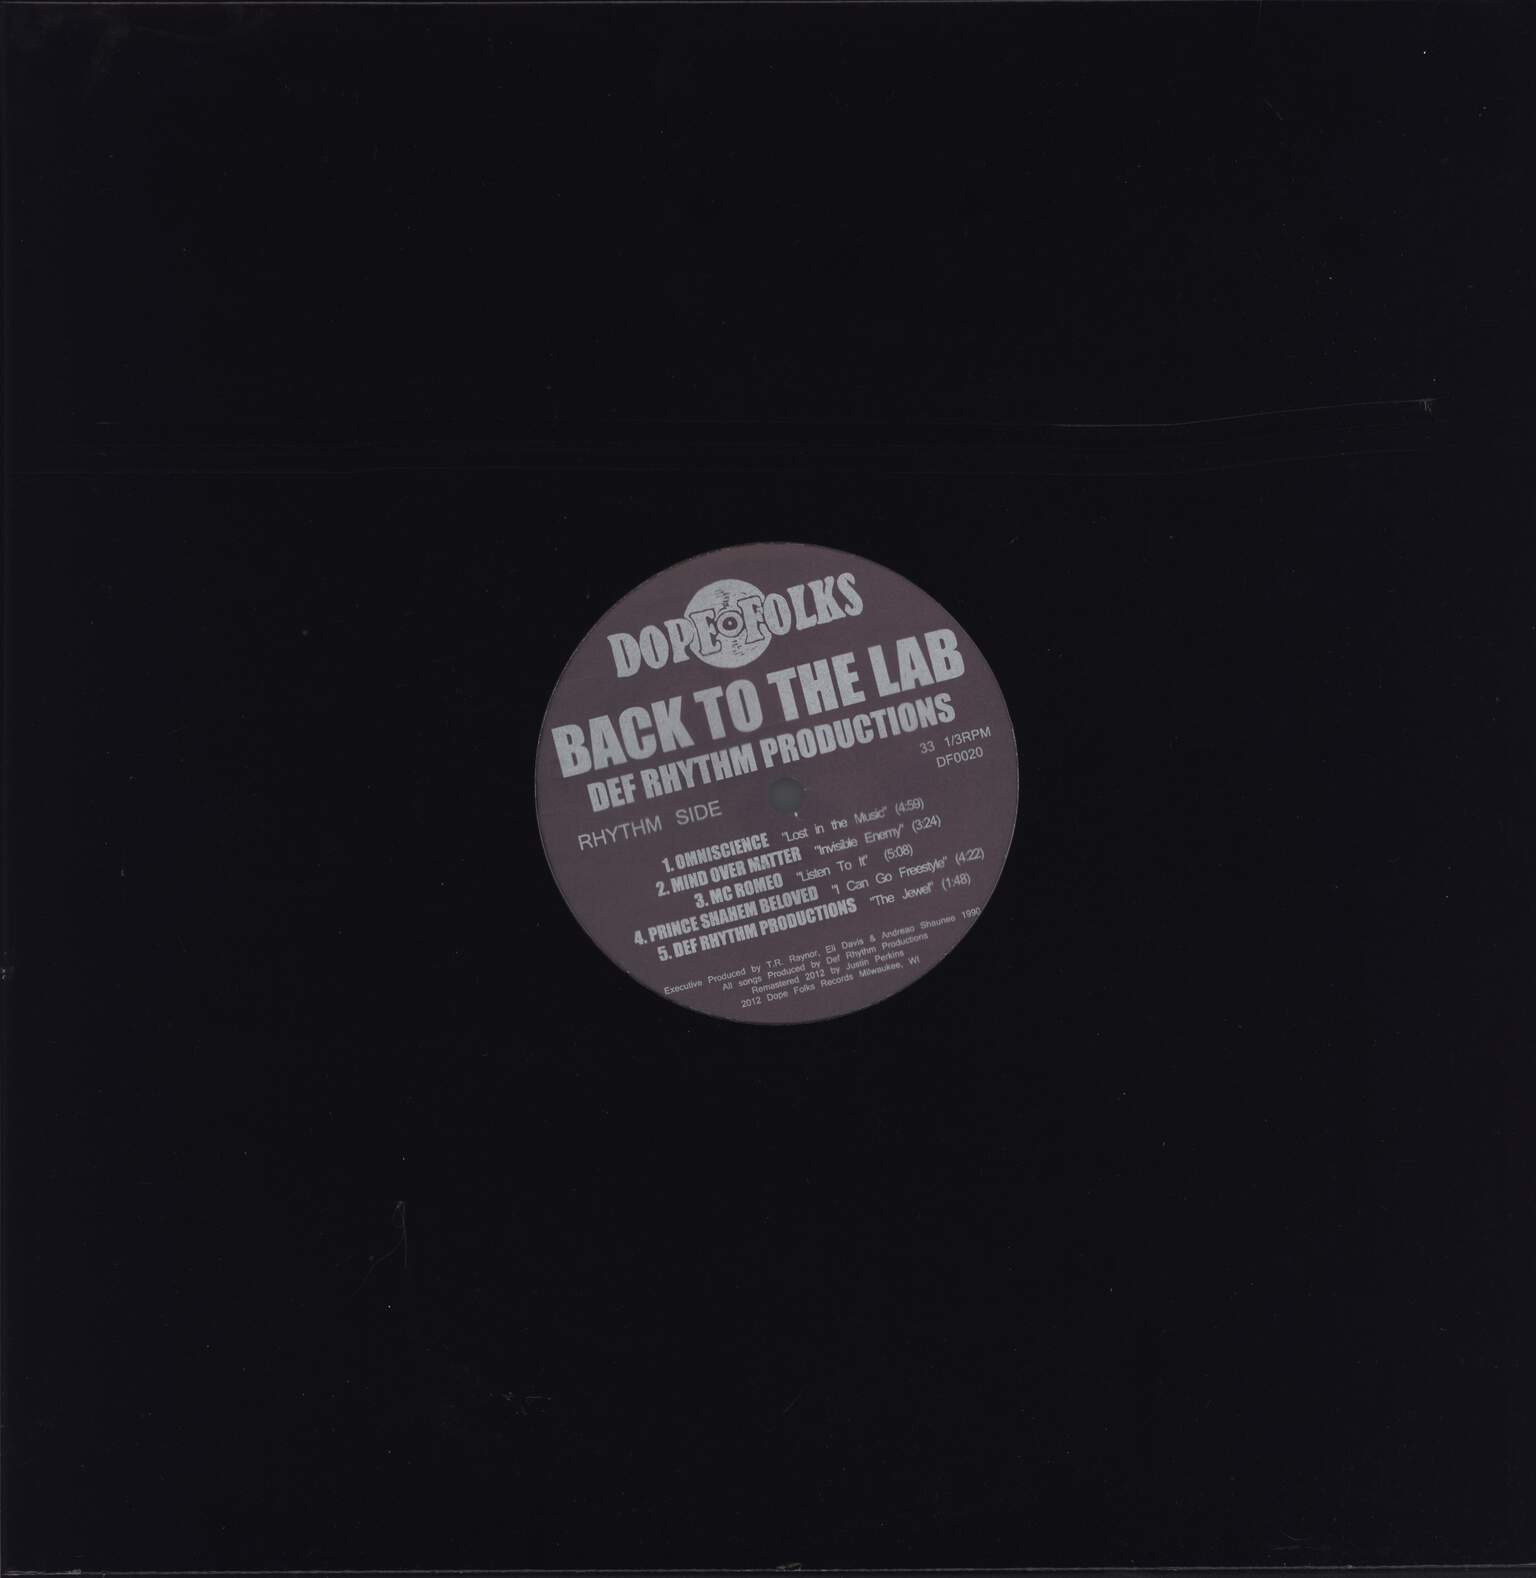 Def Rhythm Productions: Back To The Lab, LP (Vinyl)